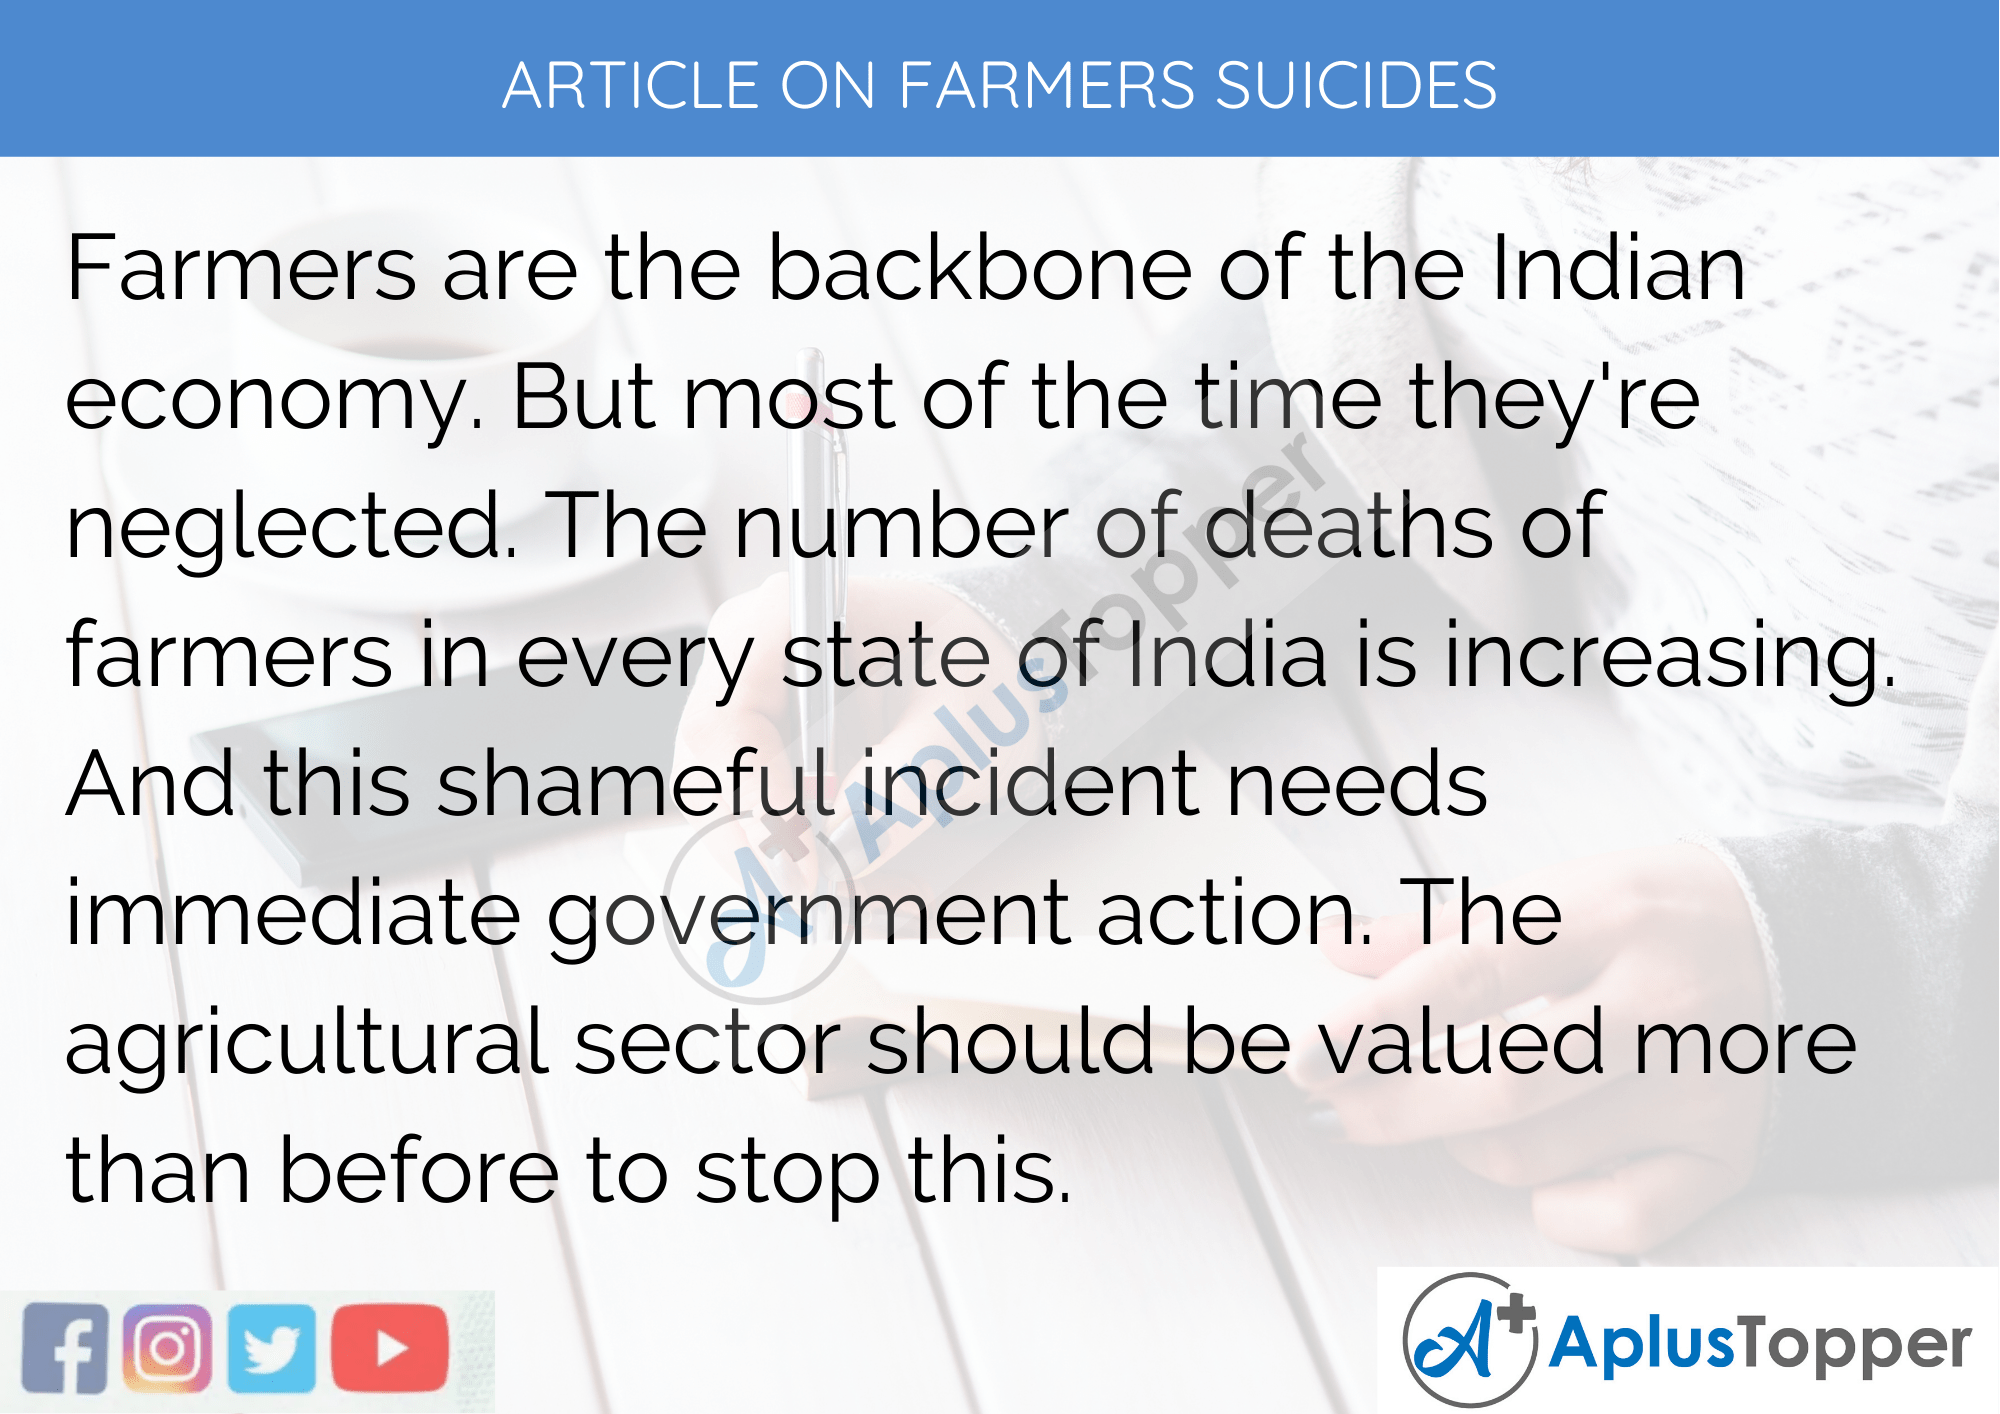 Short Article on Farmers Suicides 200 Words in English